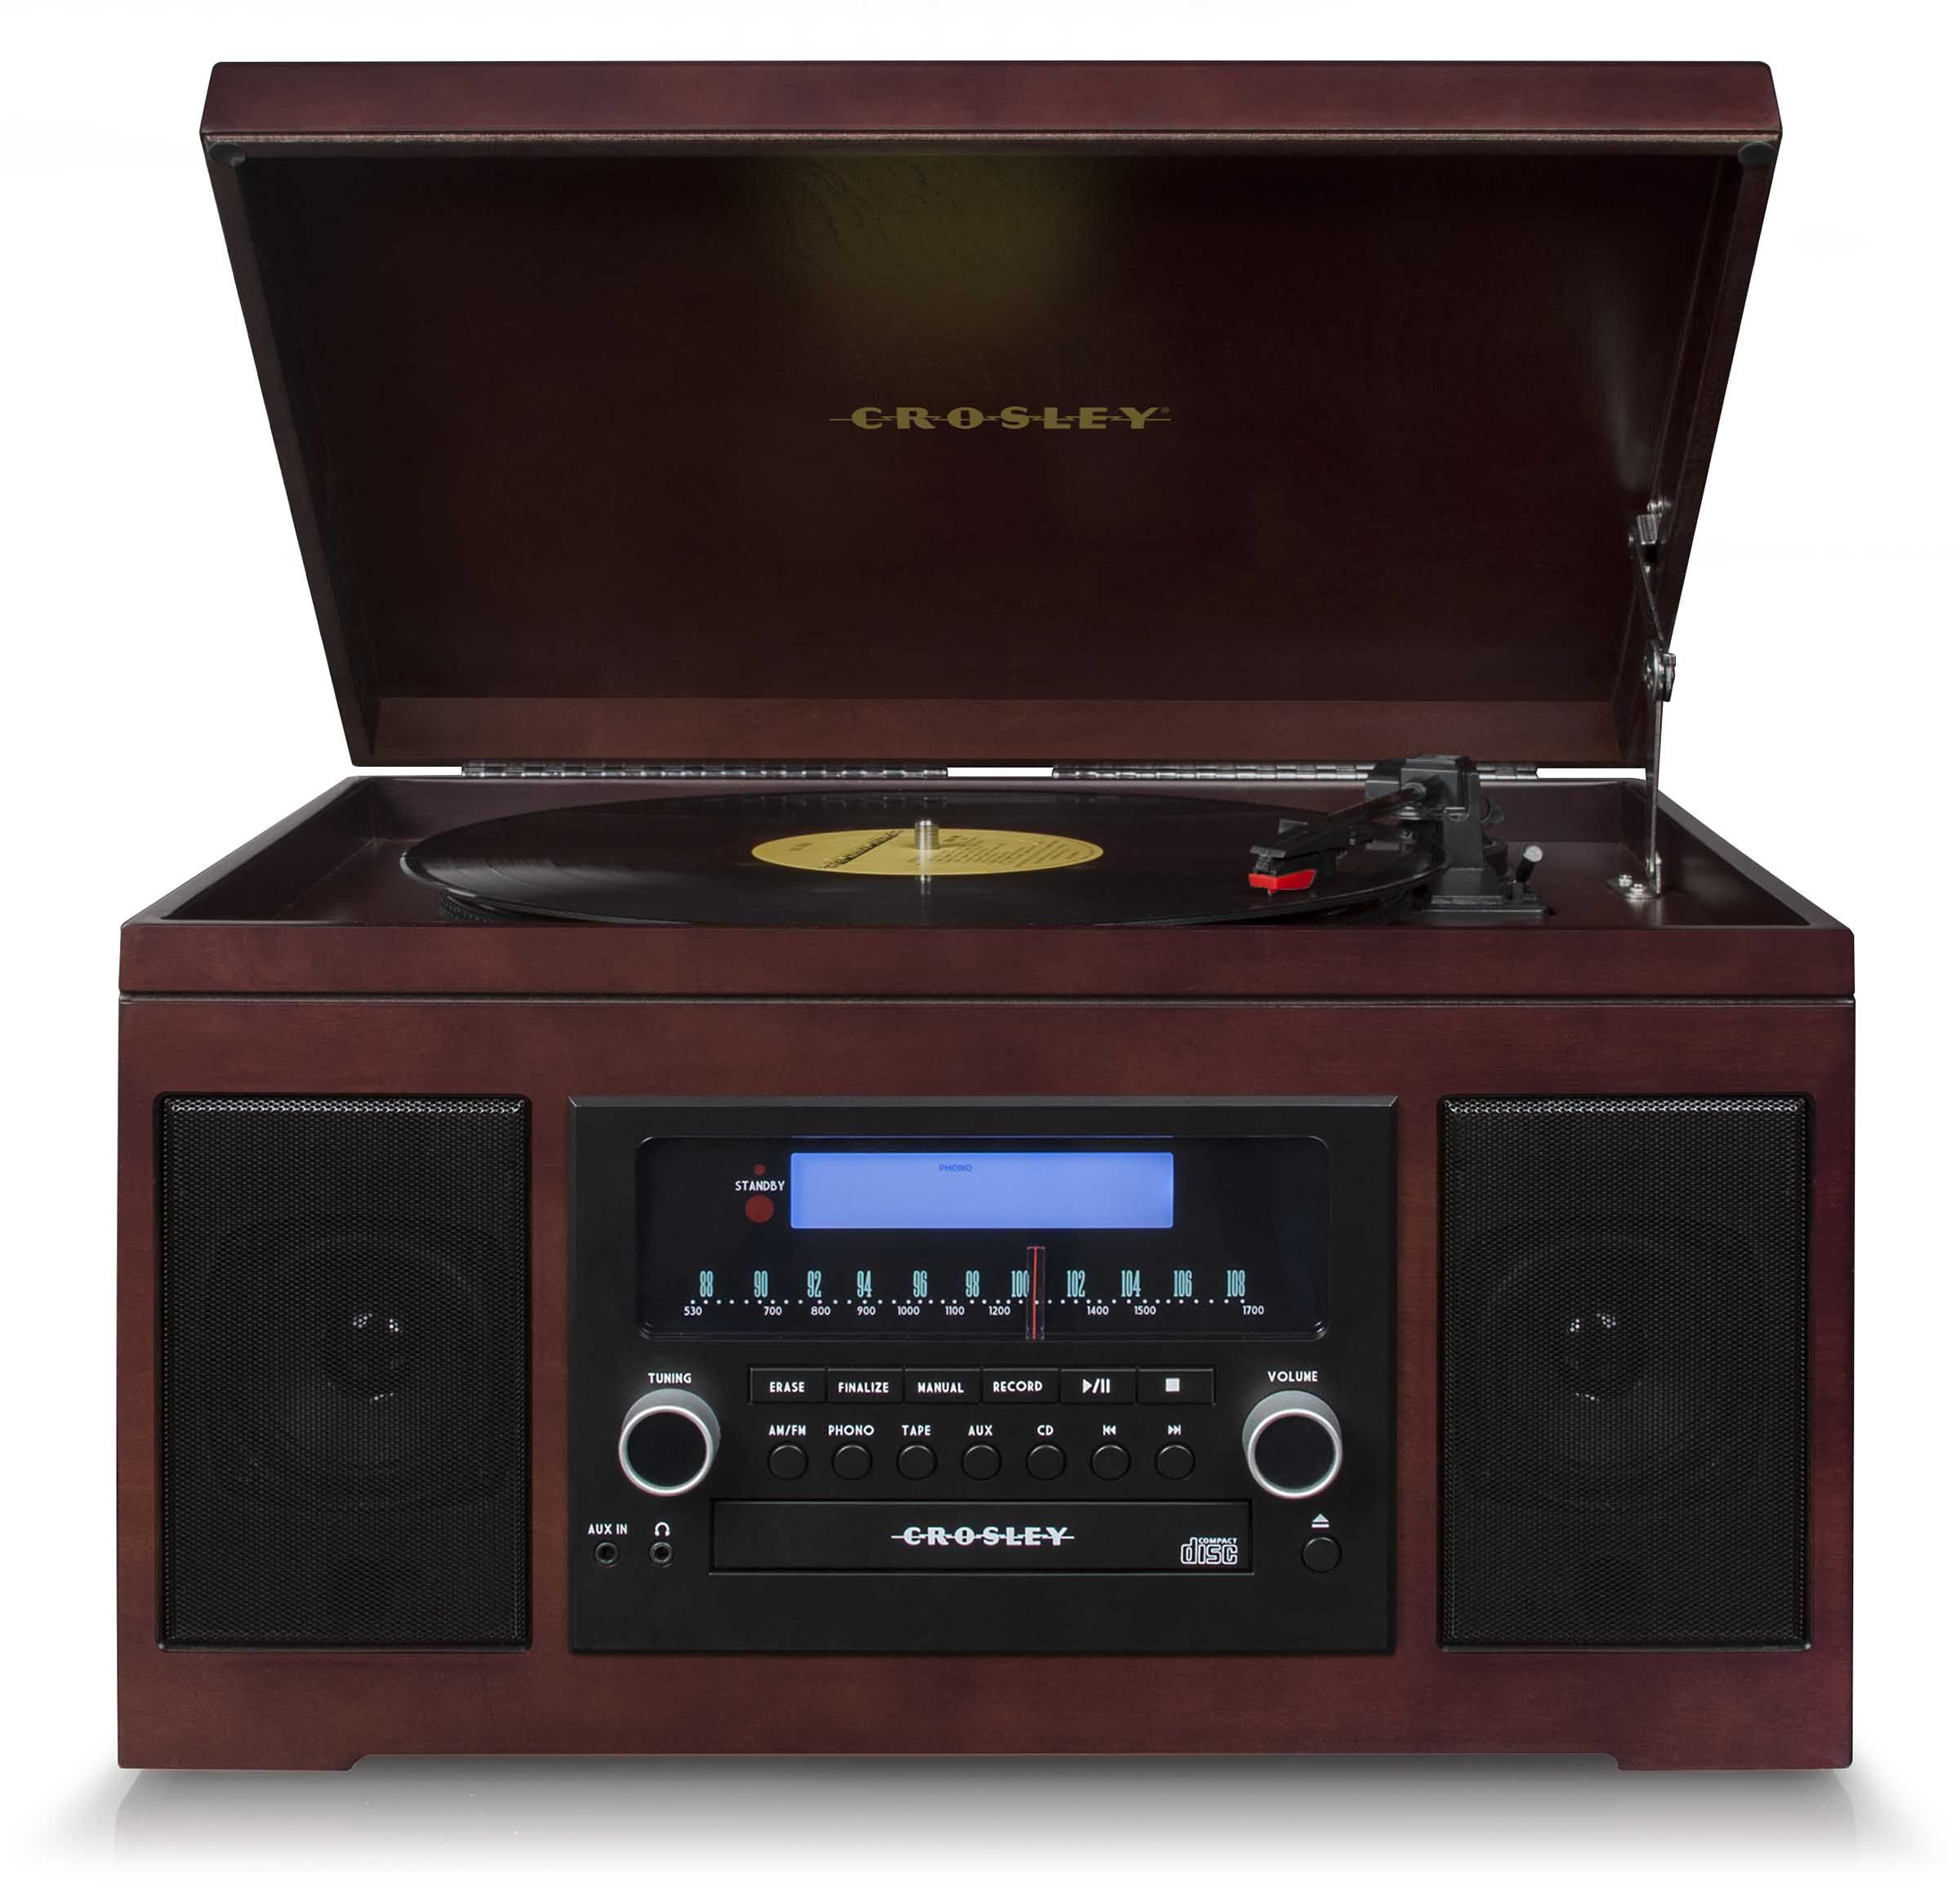 Gpx Stereo Pics | GPX Stereo System With Turntable Model# S7799 | BARRY  BECKHAM | Pinterest | Models